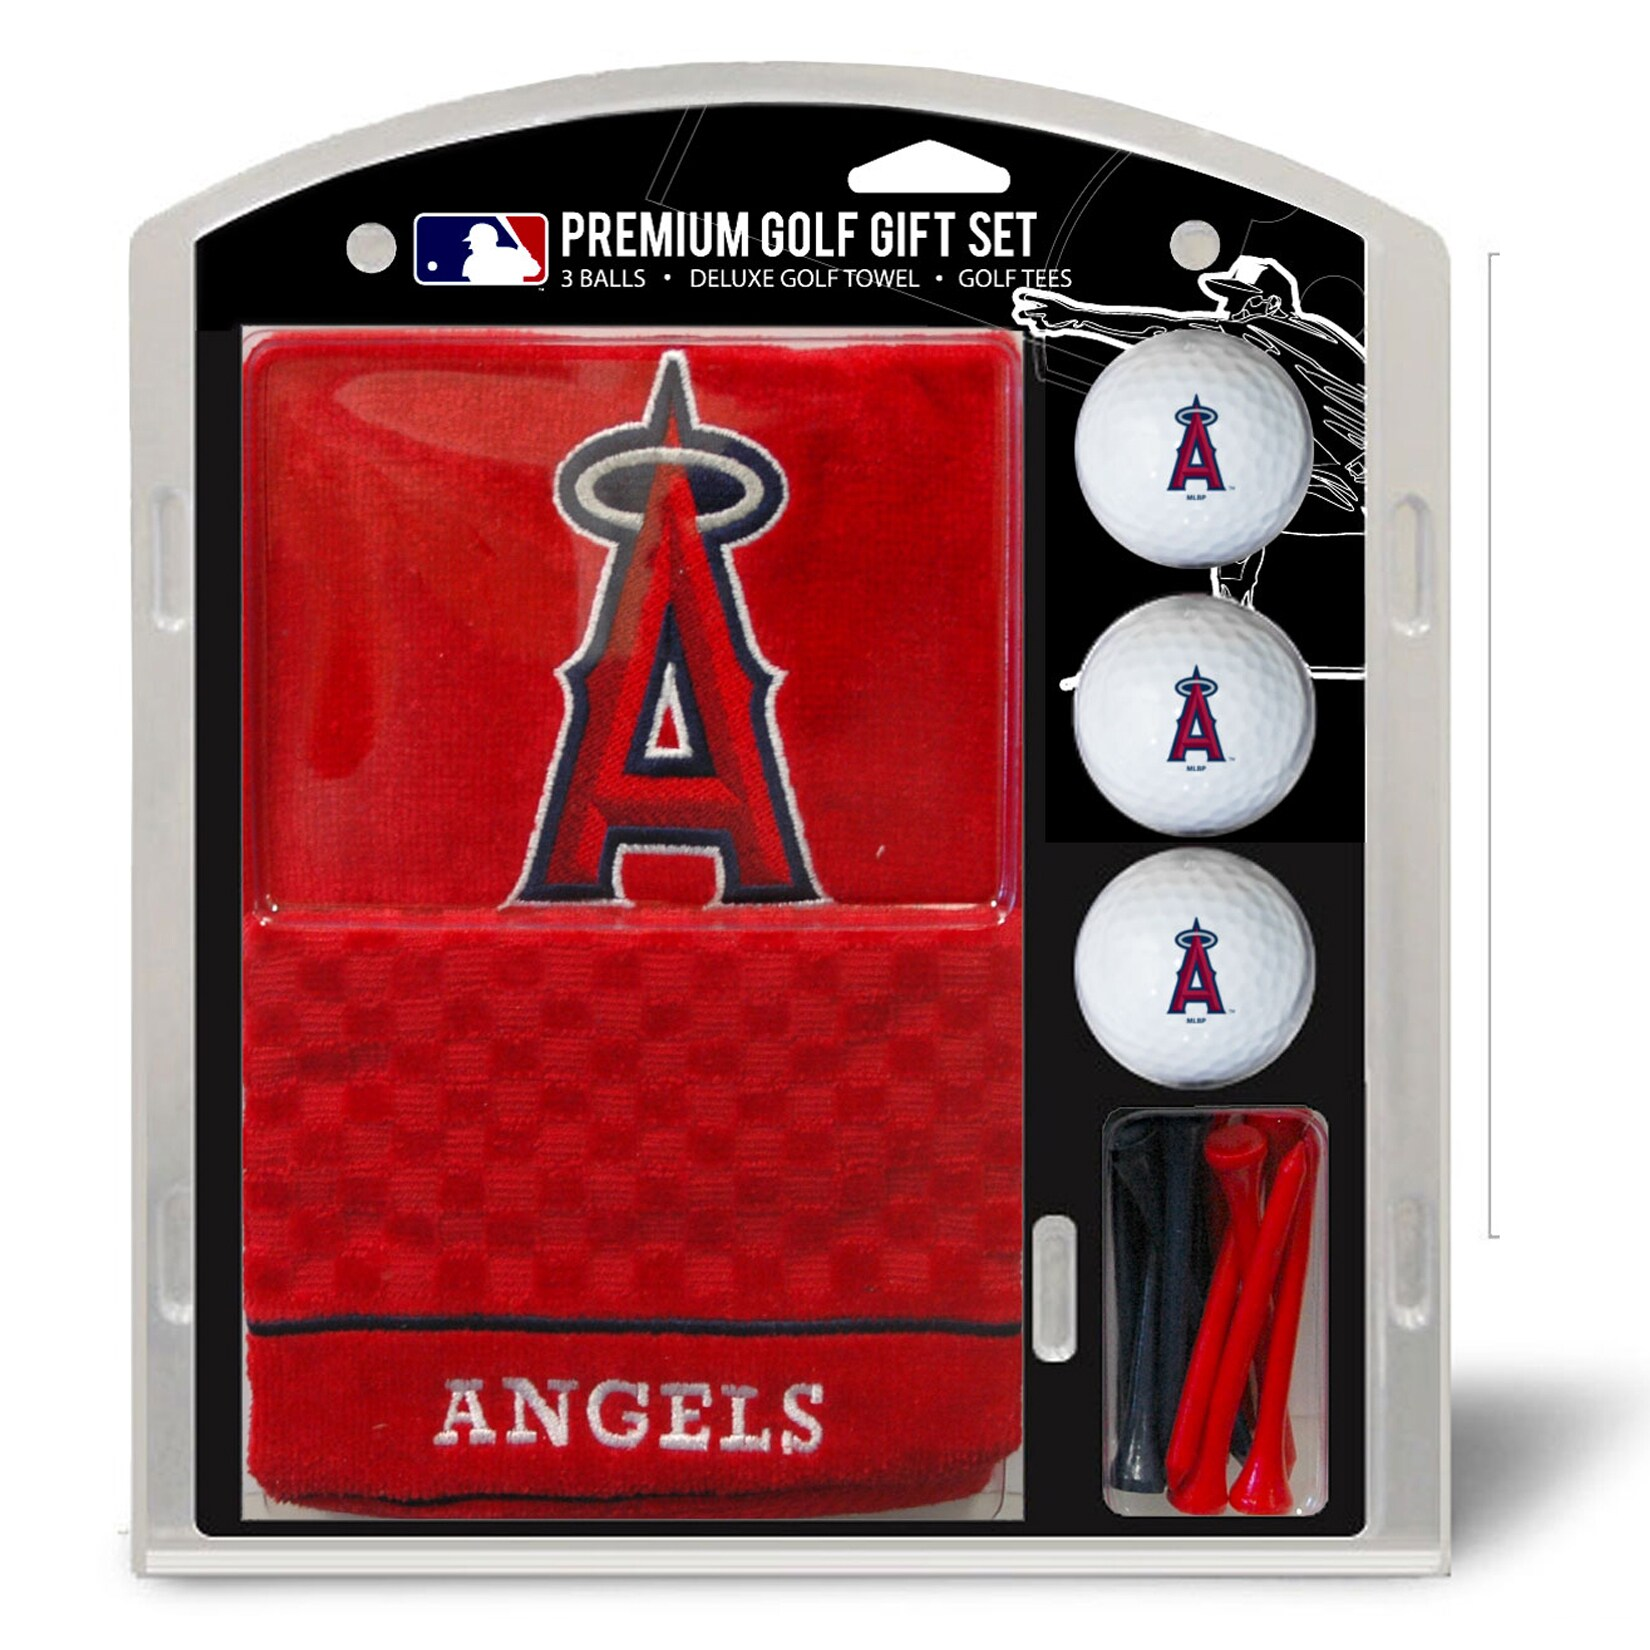 Los Angeles Angels Embroidered Golf Gift Set